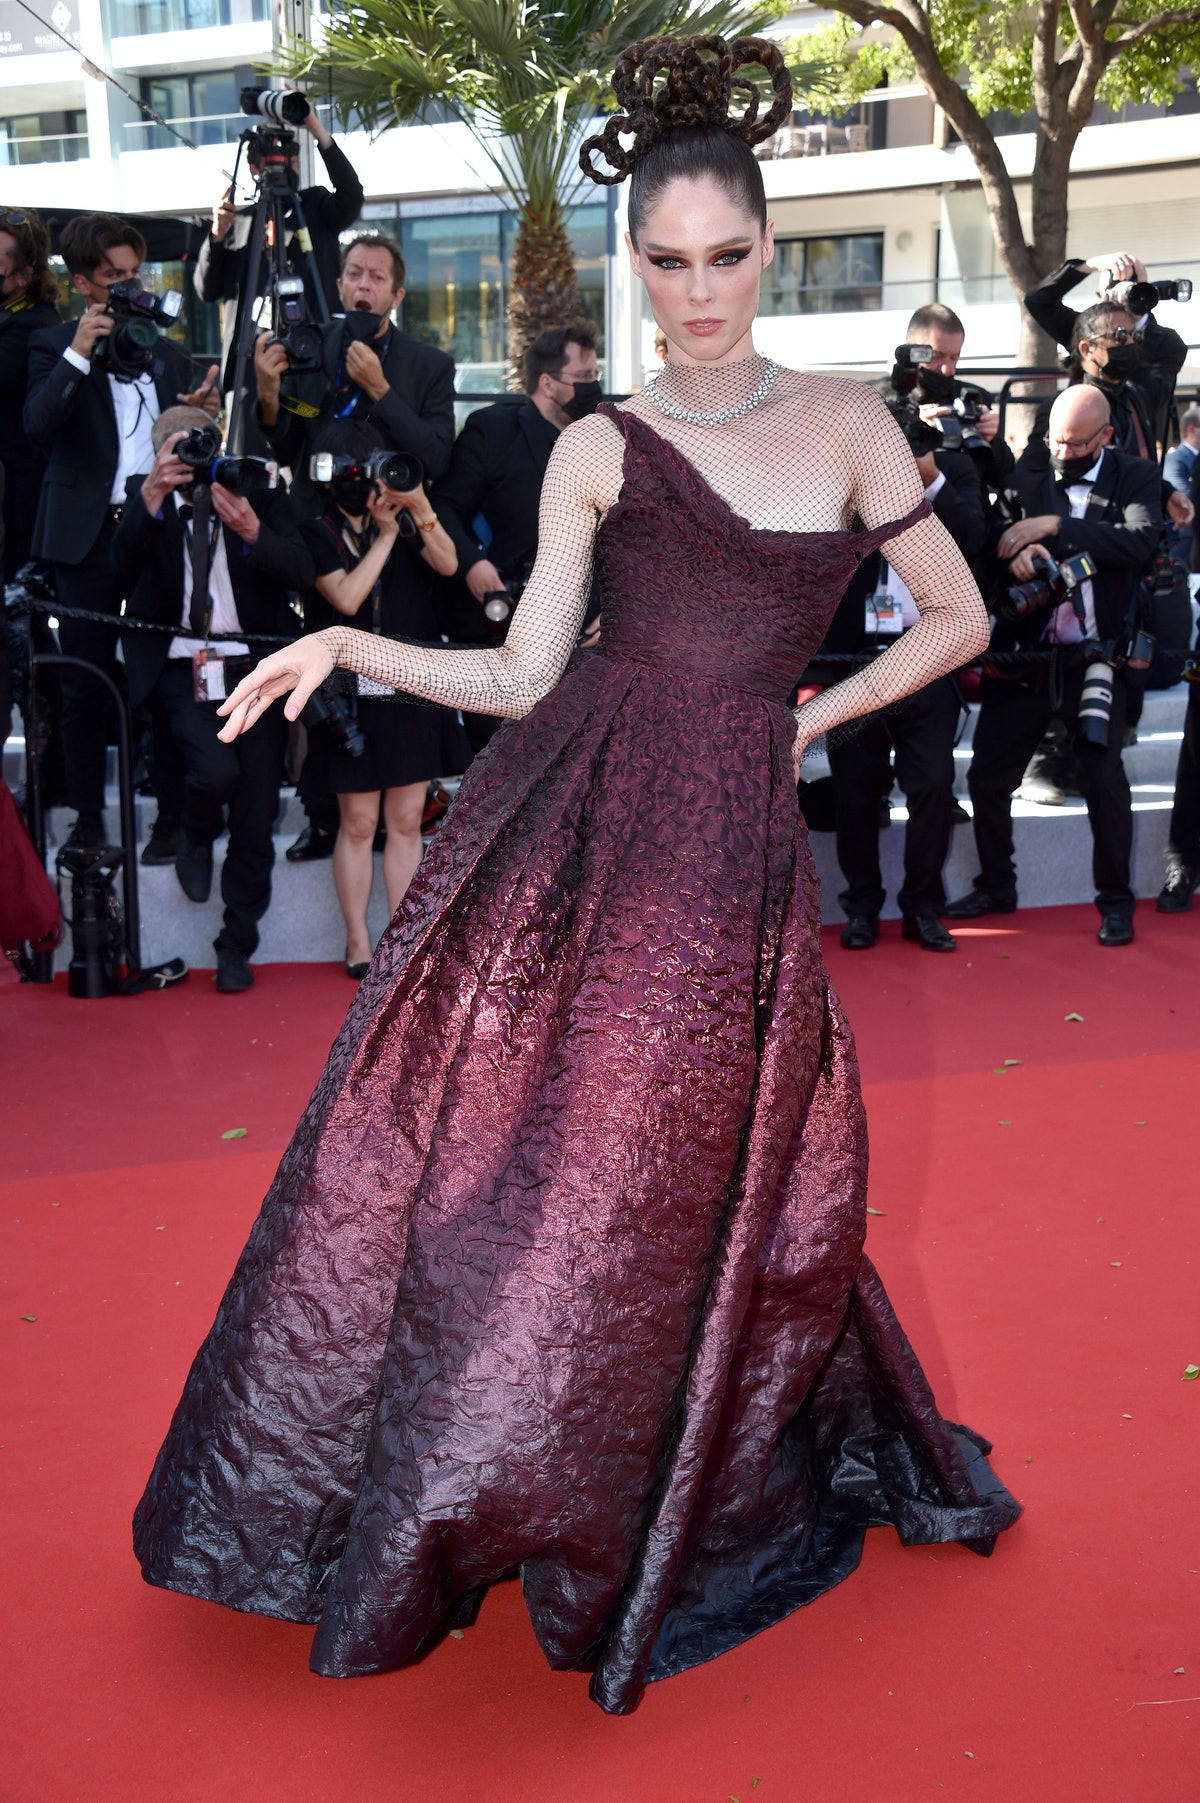 """CANNES, FRANCE - JULY 13: Coco Rocha attends the """"Aline, The Voice Of Love"""" screening during the 74th annual Cannes Film Festival on July 13, 2021 in Cannes, France. (Photo by Lionel Hahn/Getty Images)"""